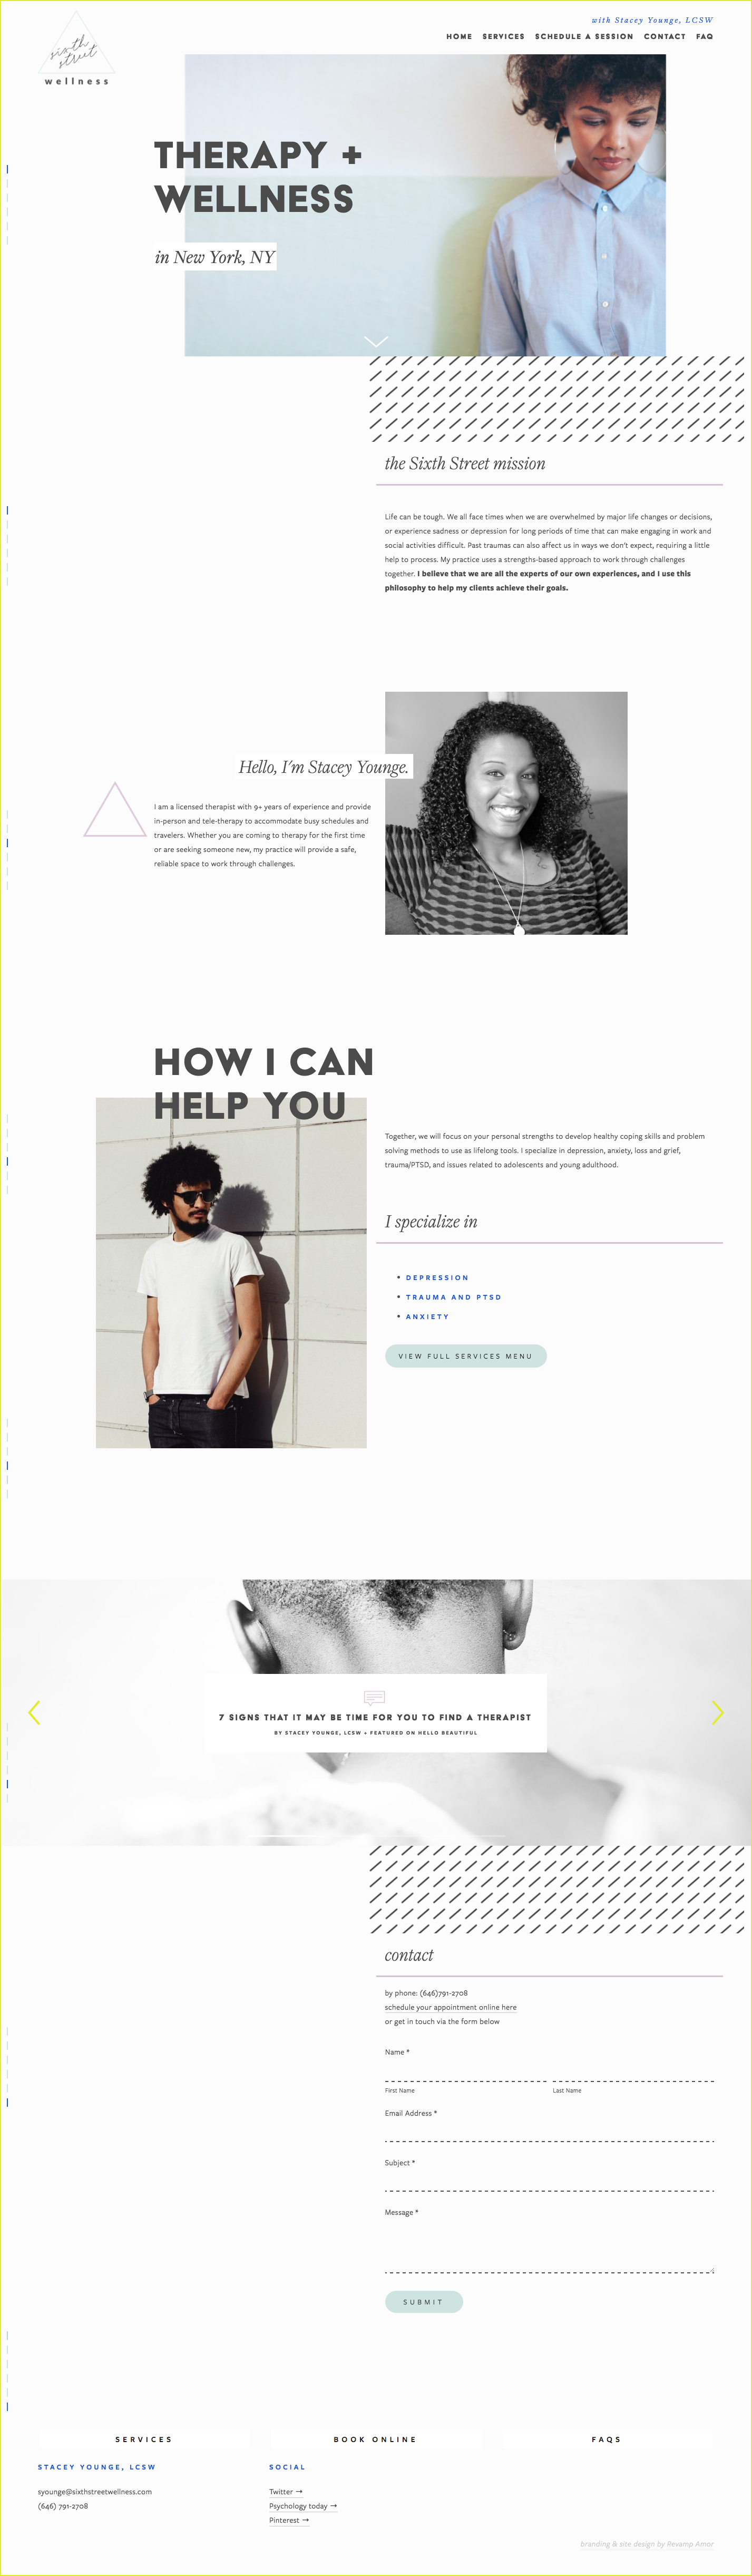 custom brand and squarespace web design